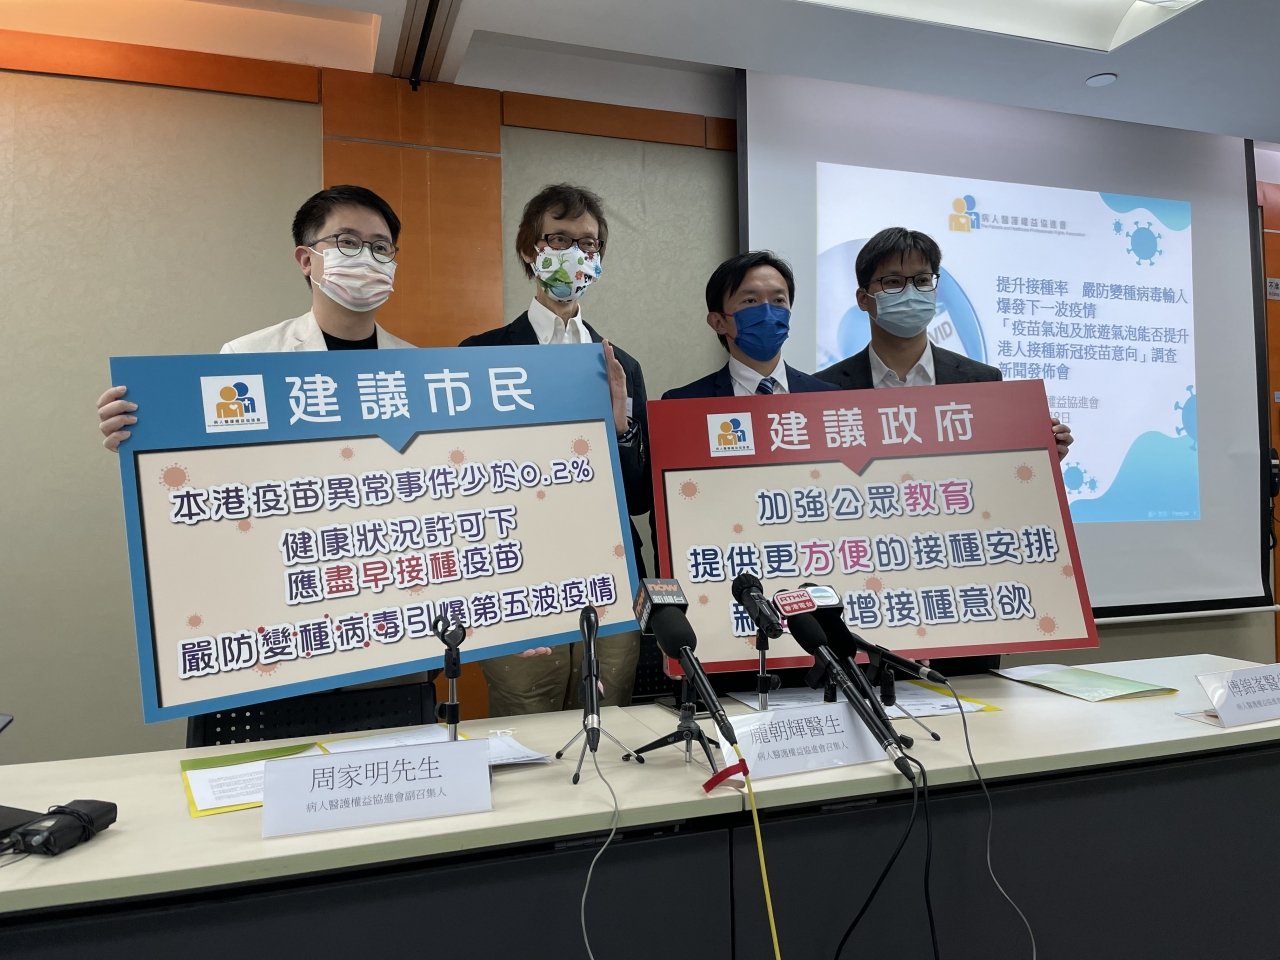 """A survey has found that the government's """"vaccine bubble"""" measures did not serve as an incentive for most people to get vaccinated. Photo: RTHK"""